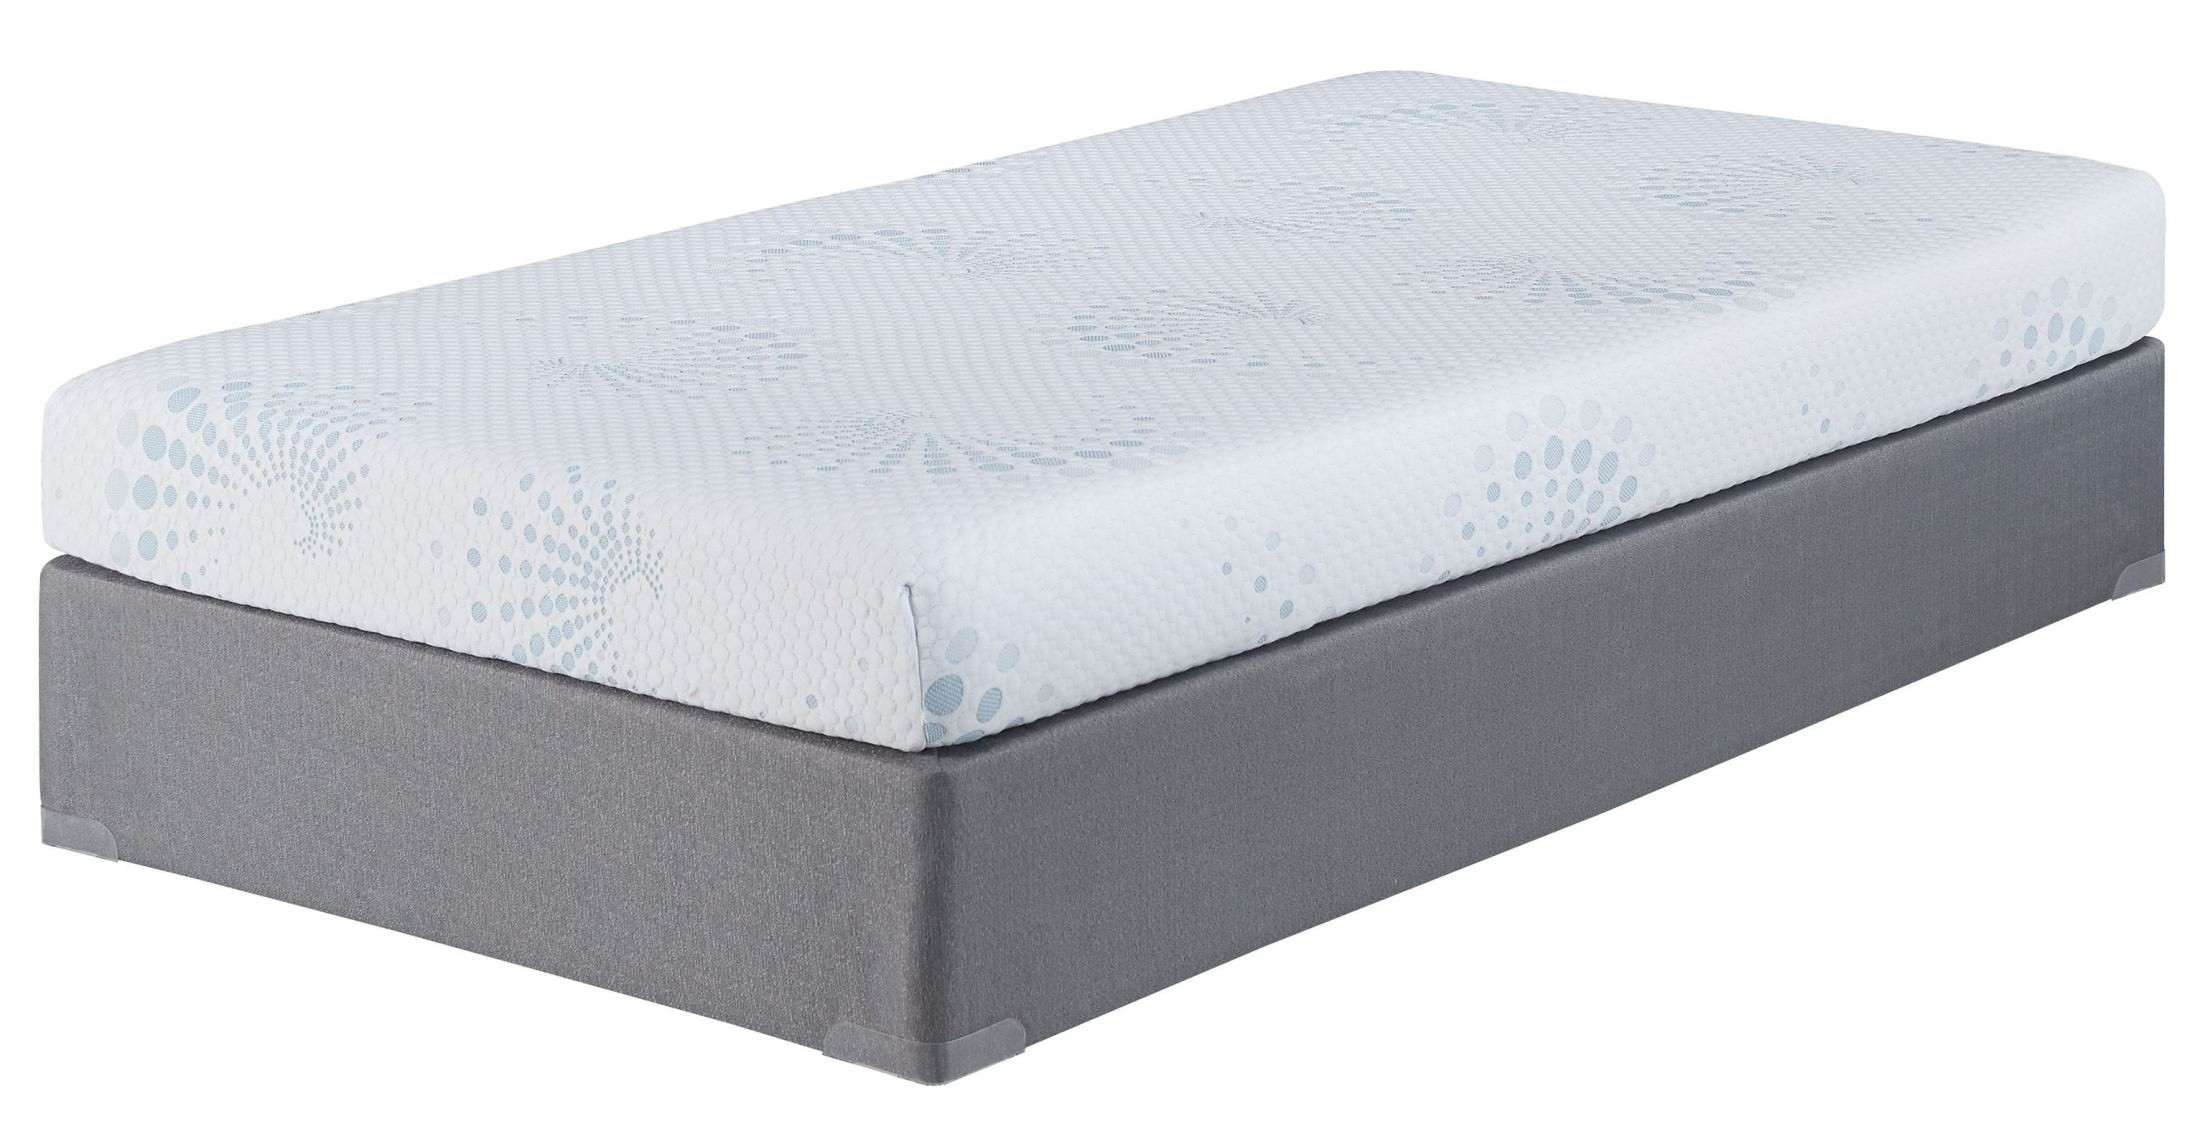 Kids bedding full memory foam mattress m80221 ashley Full size memory foam mattress